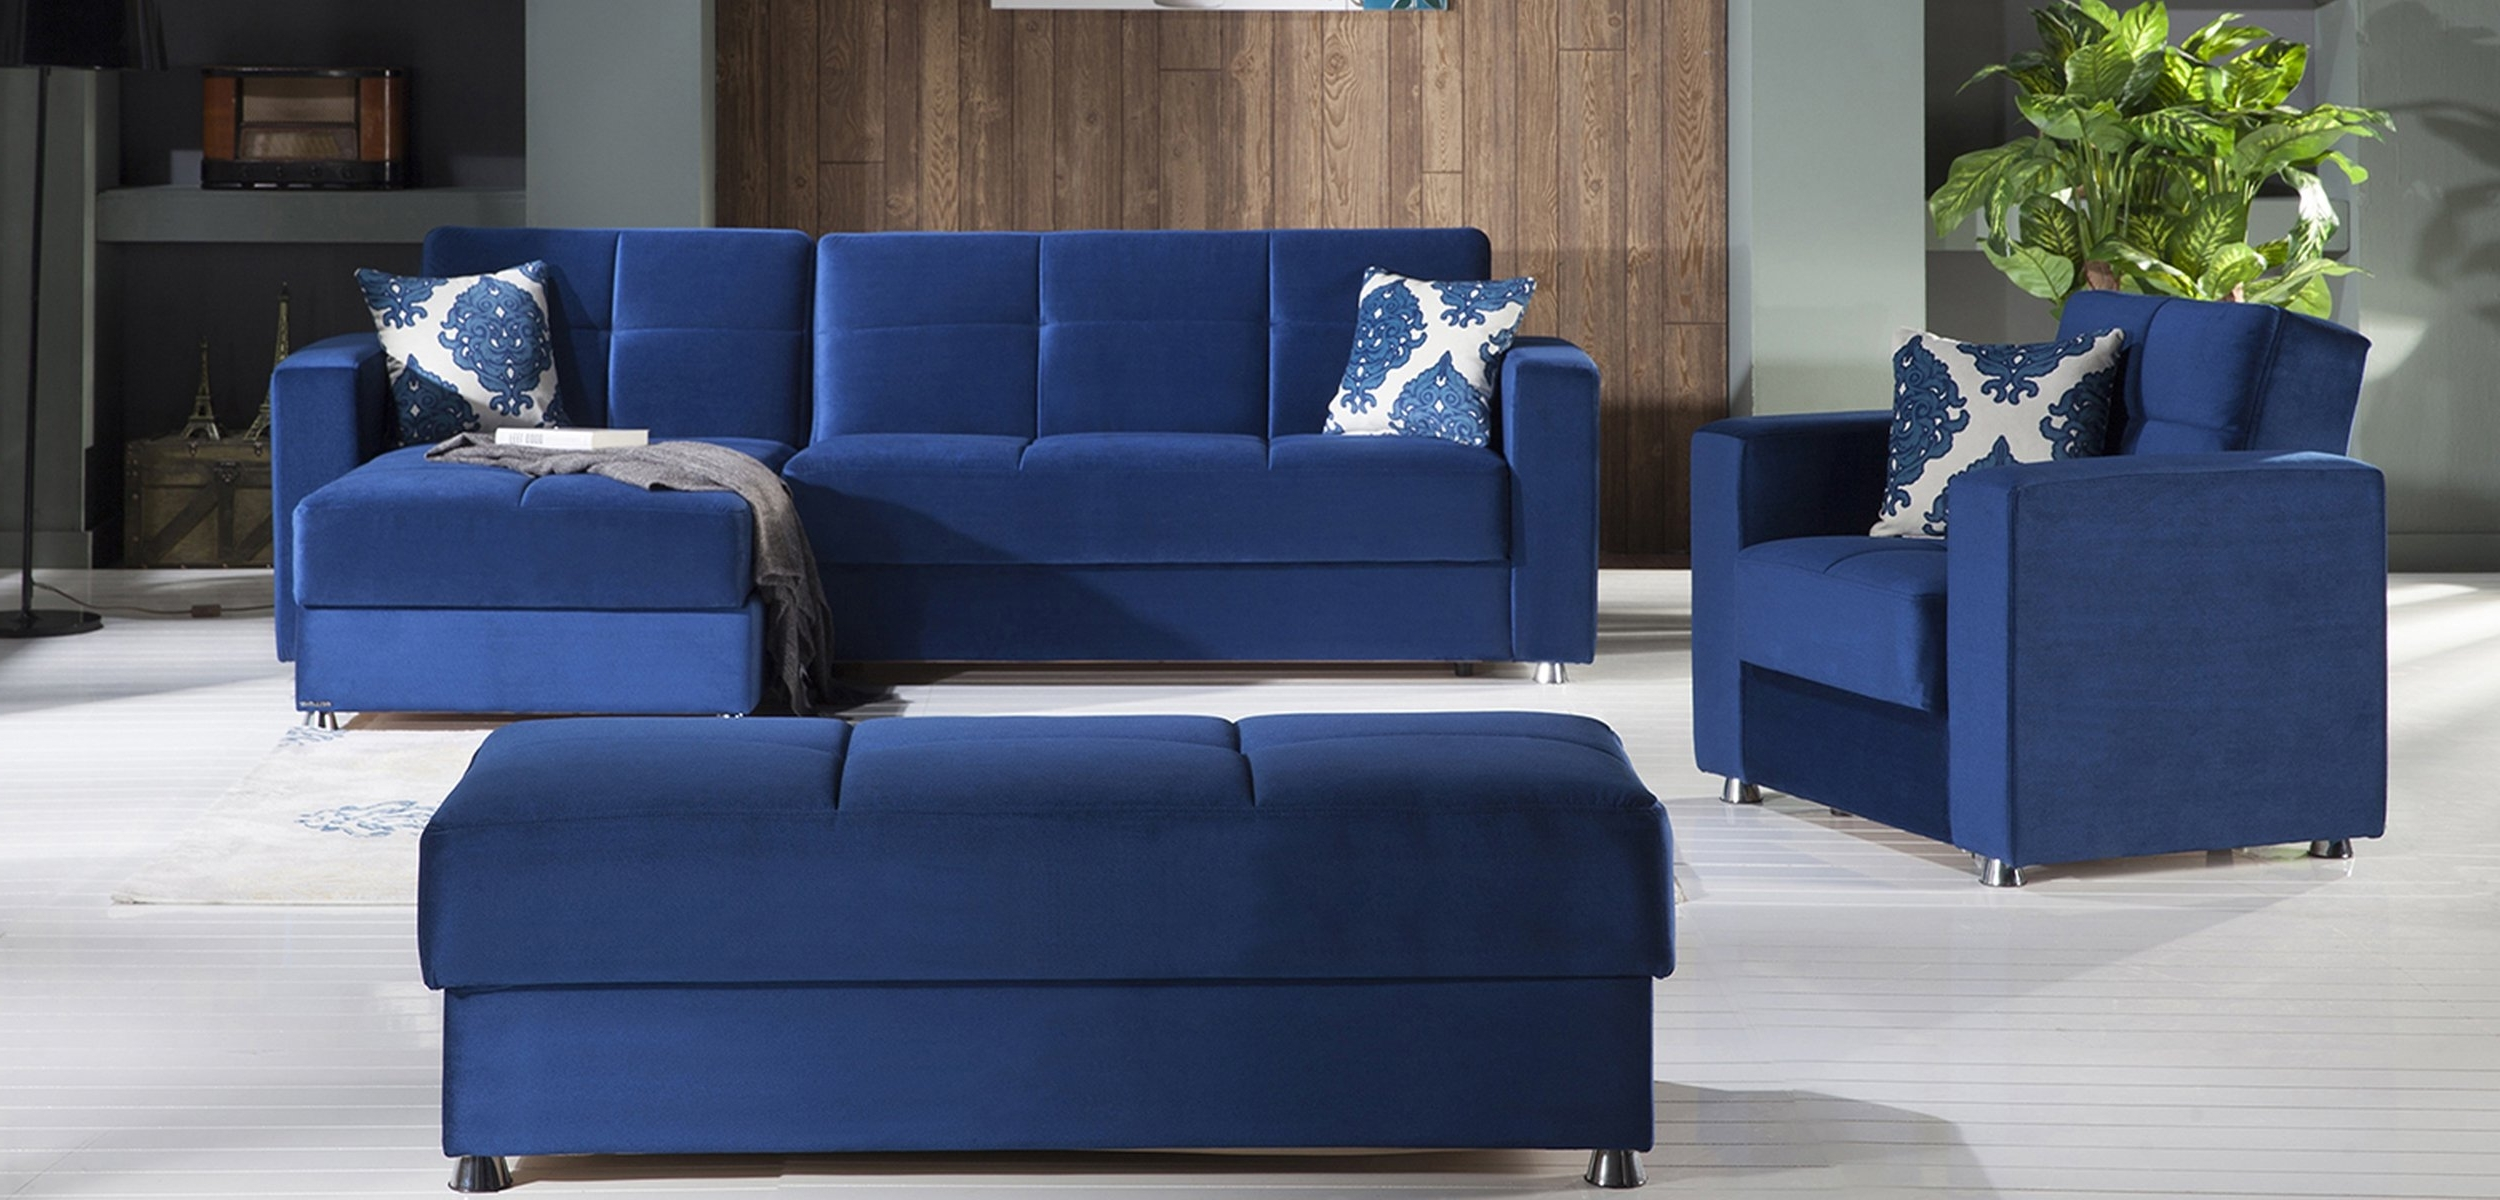 Blue Sectional Navy Blue Sectional Sofa